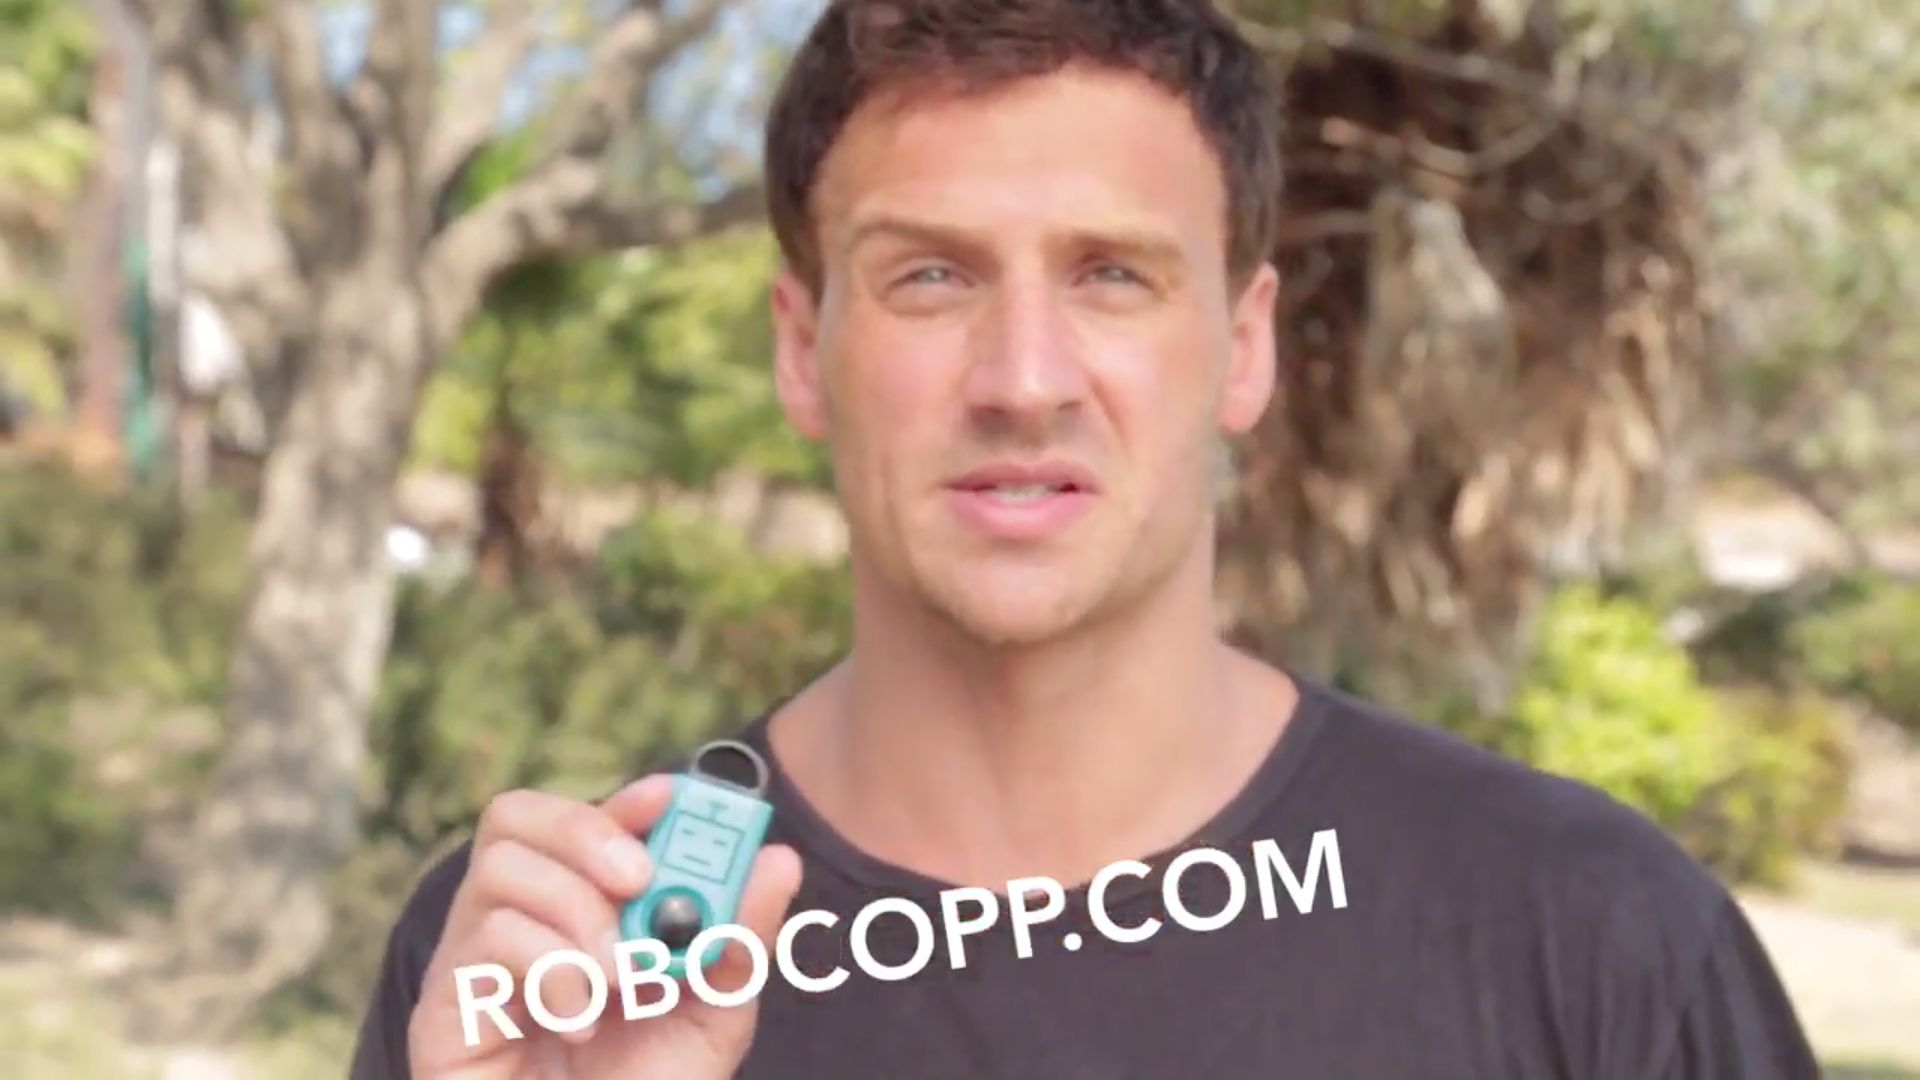 Olympic gold medalist Ryan Lochte is using his fame to endorse a personal security device